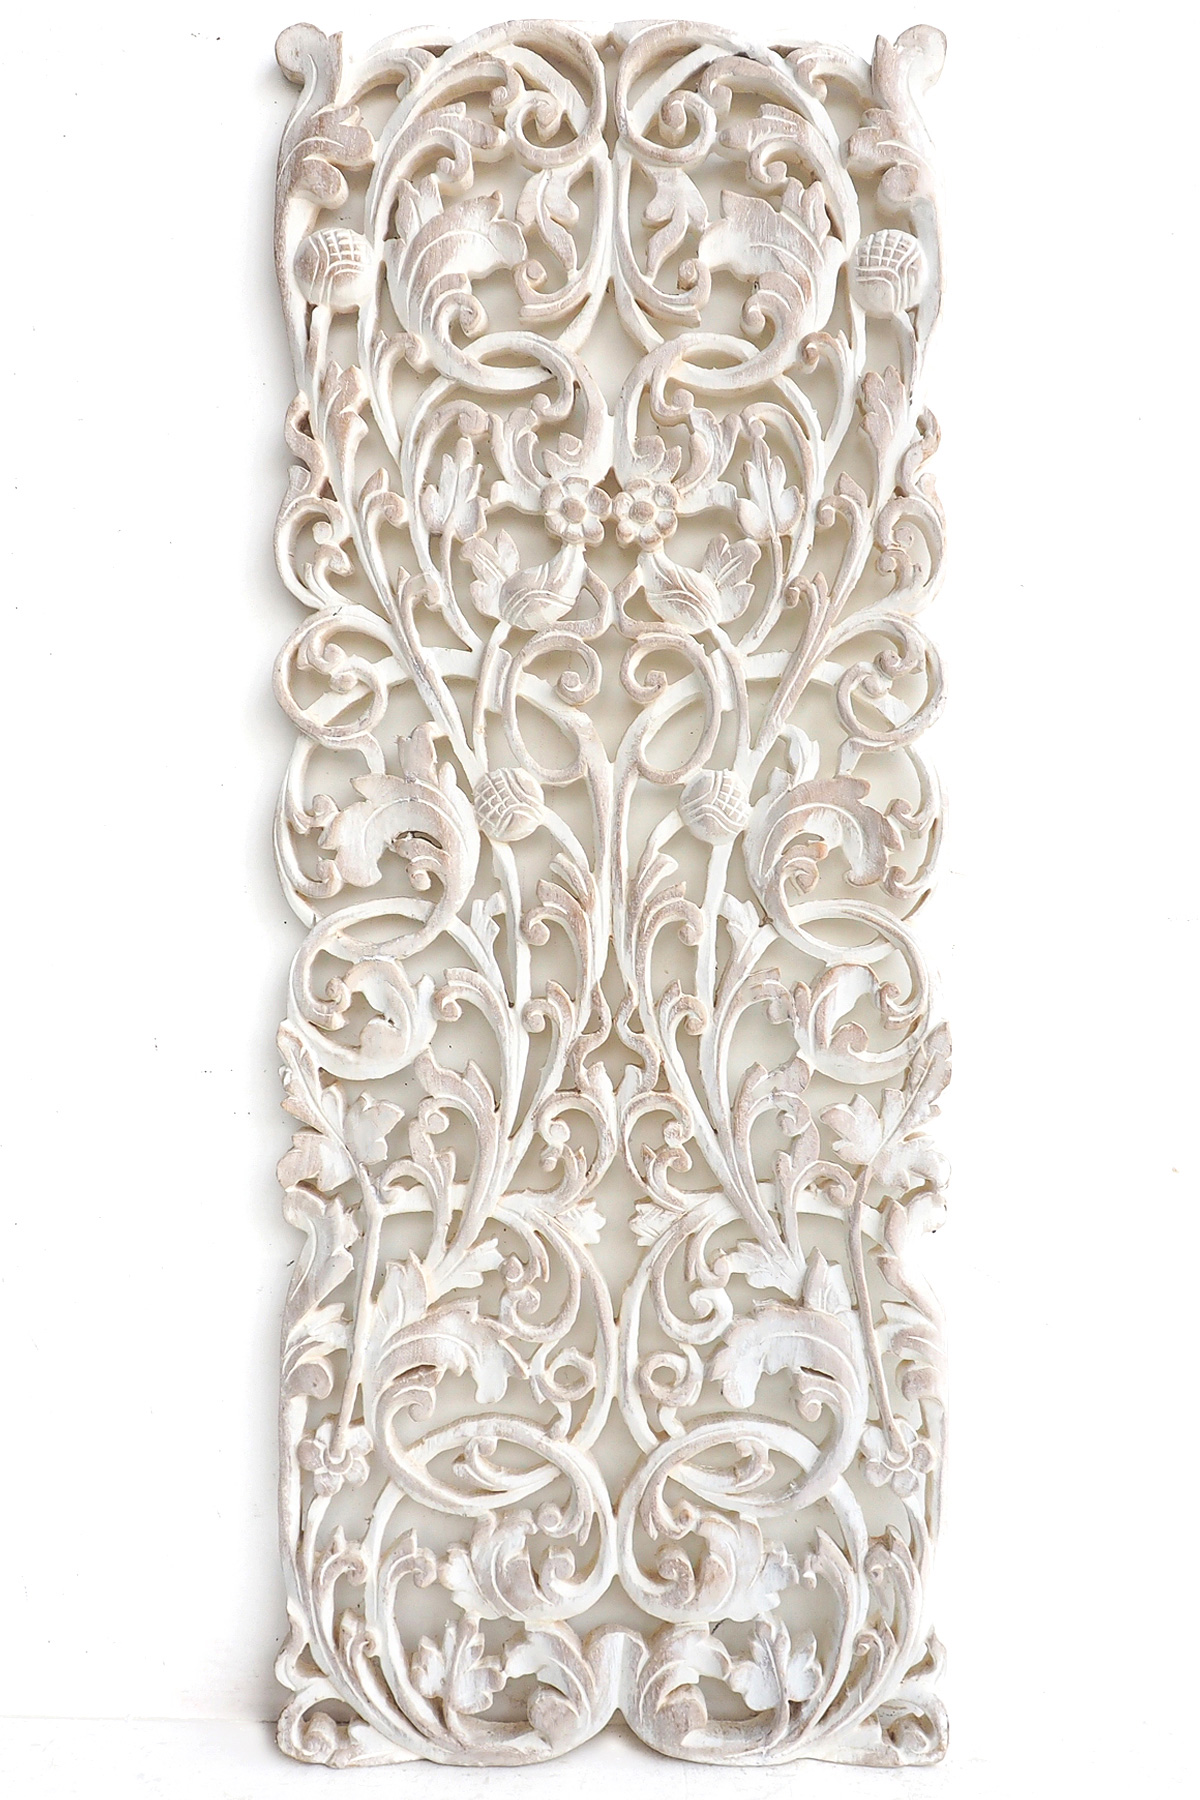 Thai wood carving wall hanging whitewash color - Thai Wood Carving Wall Art Hanging